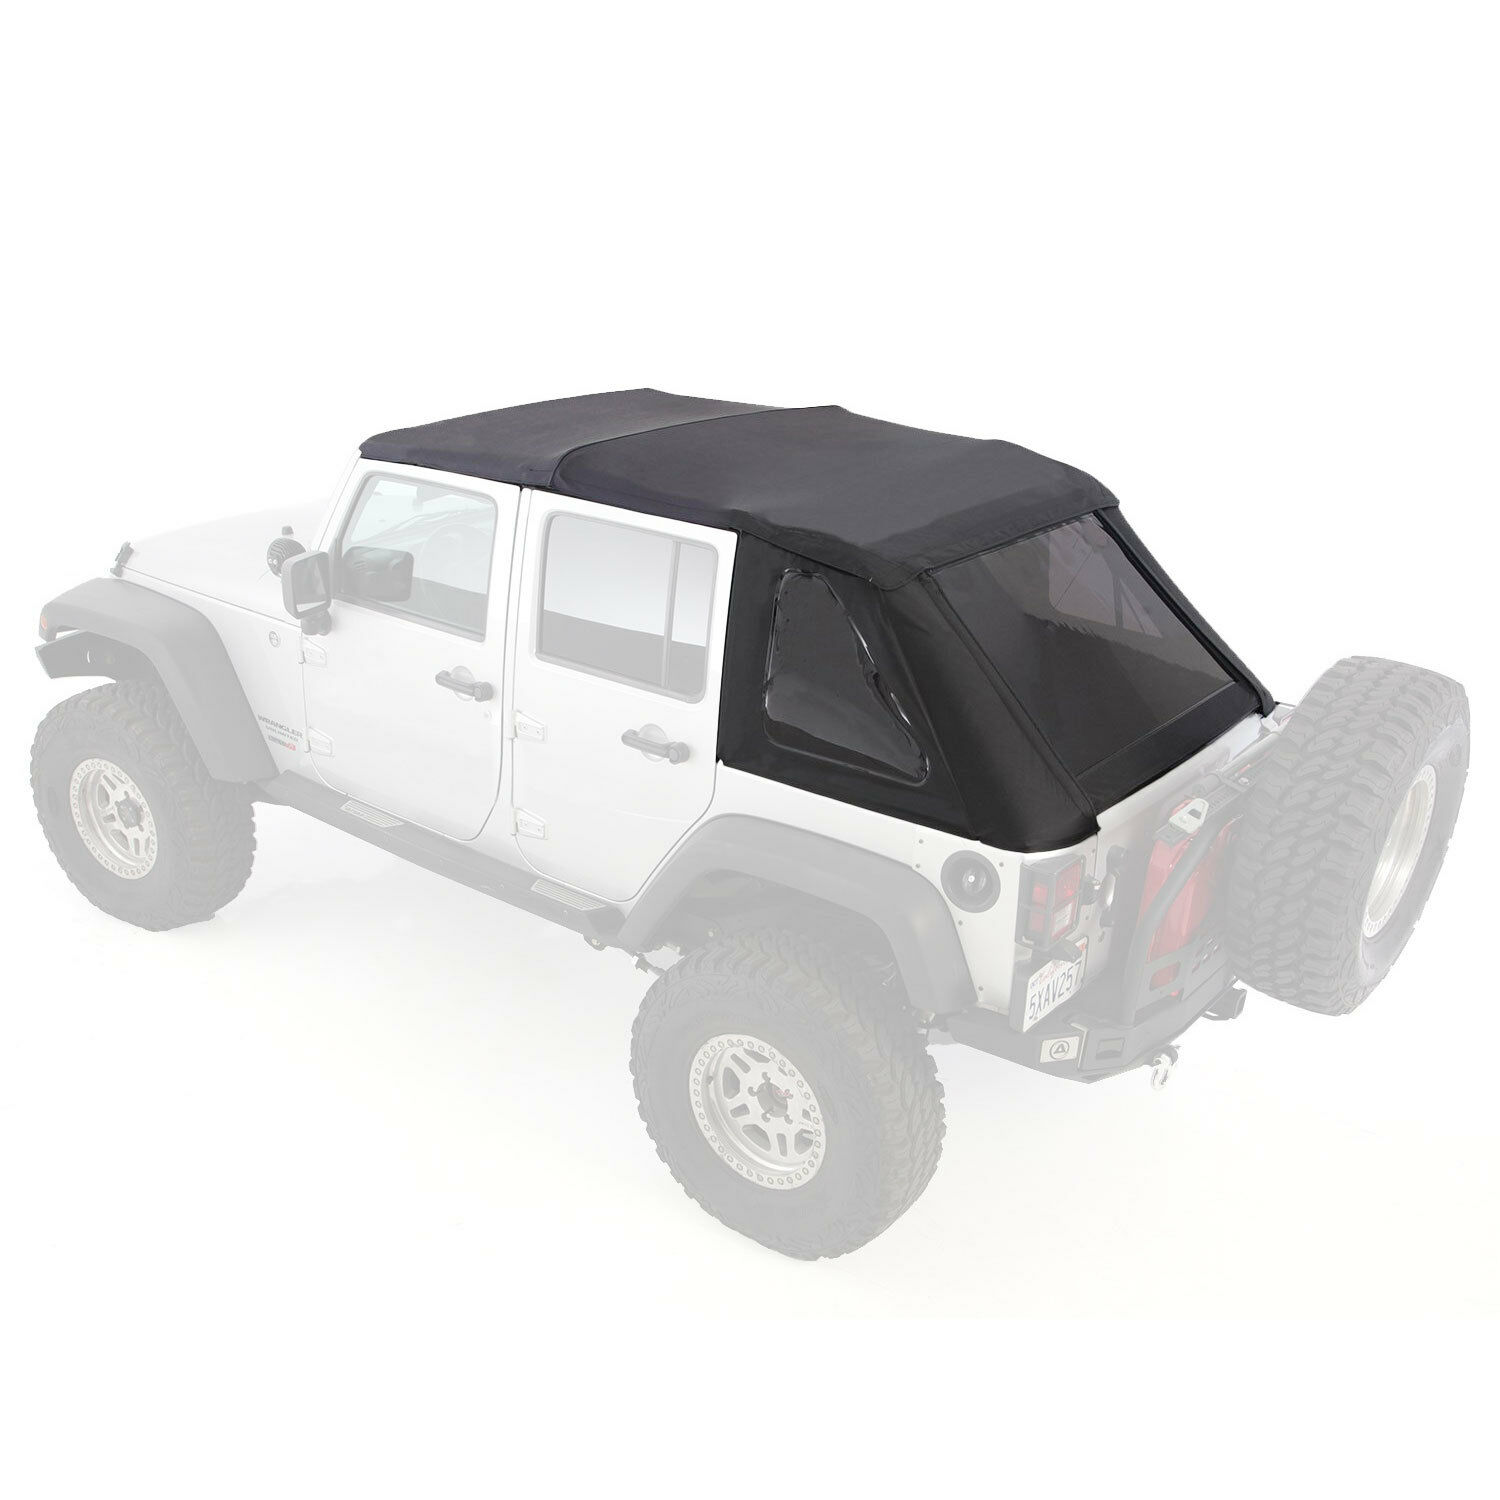 Smittybilt 9083235K Bowless Combo Top Kit w/Tinted Windows for Jeep Wrangler & JK  07-17